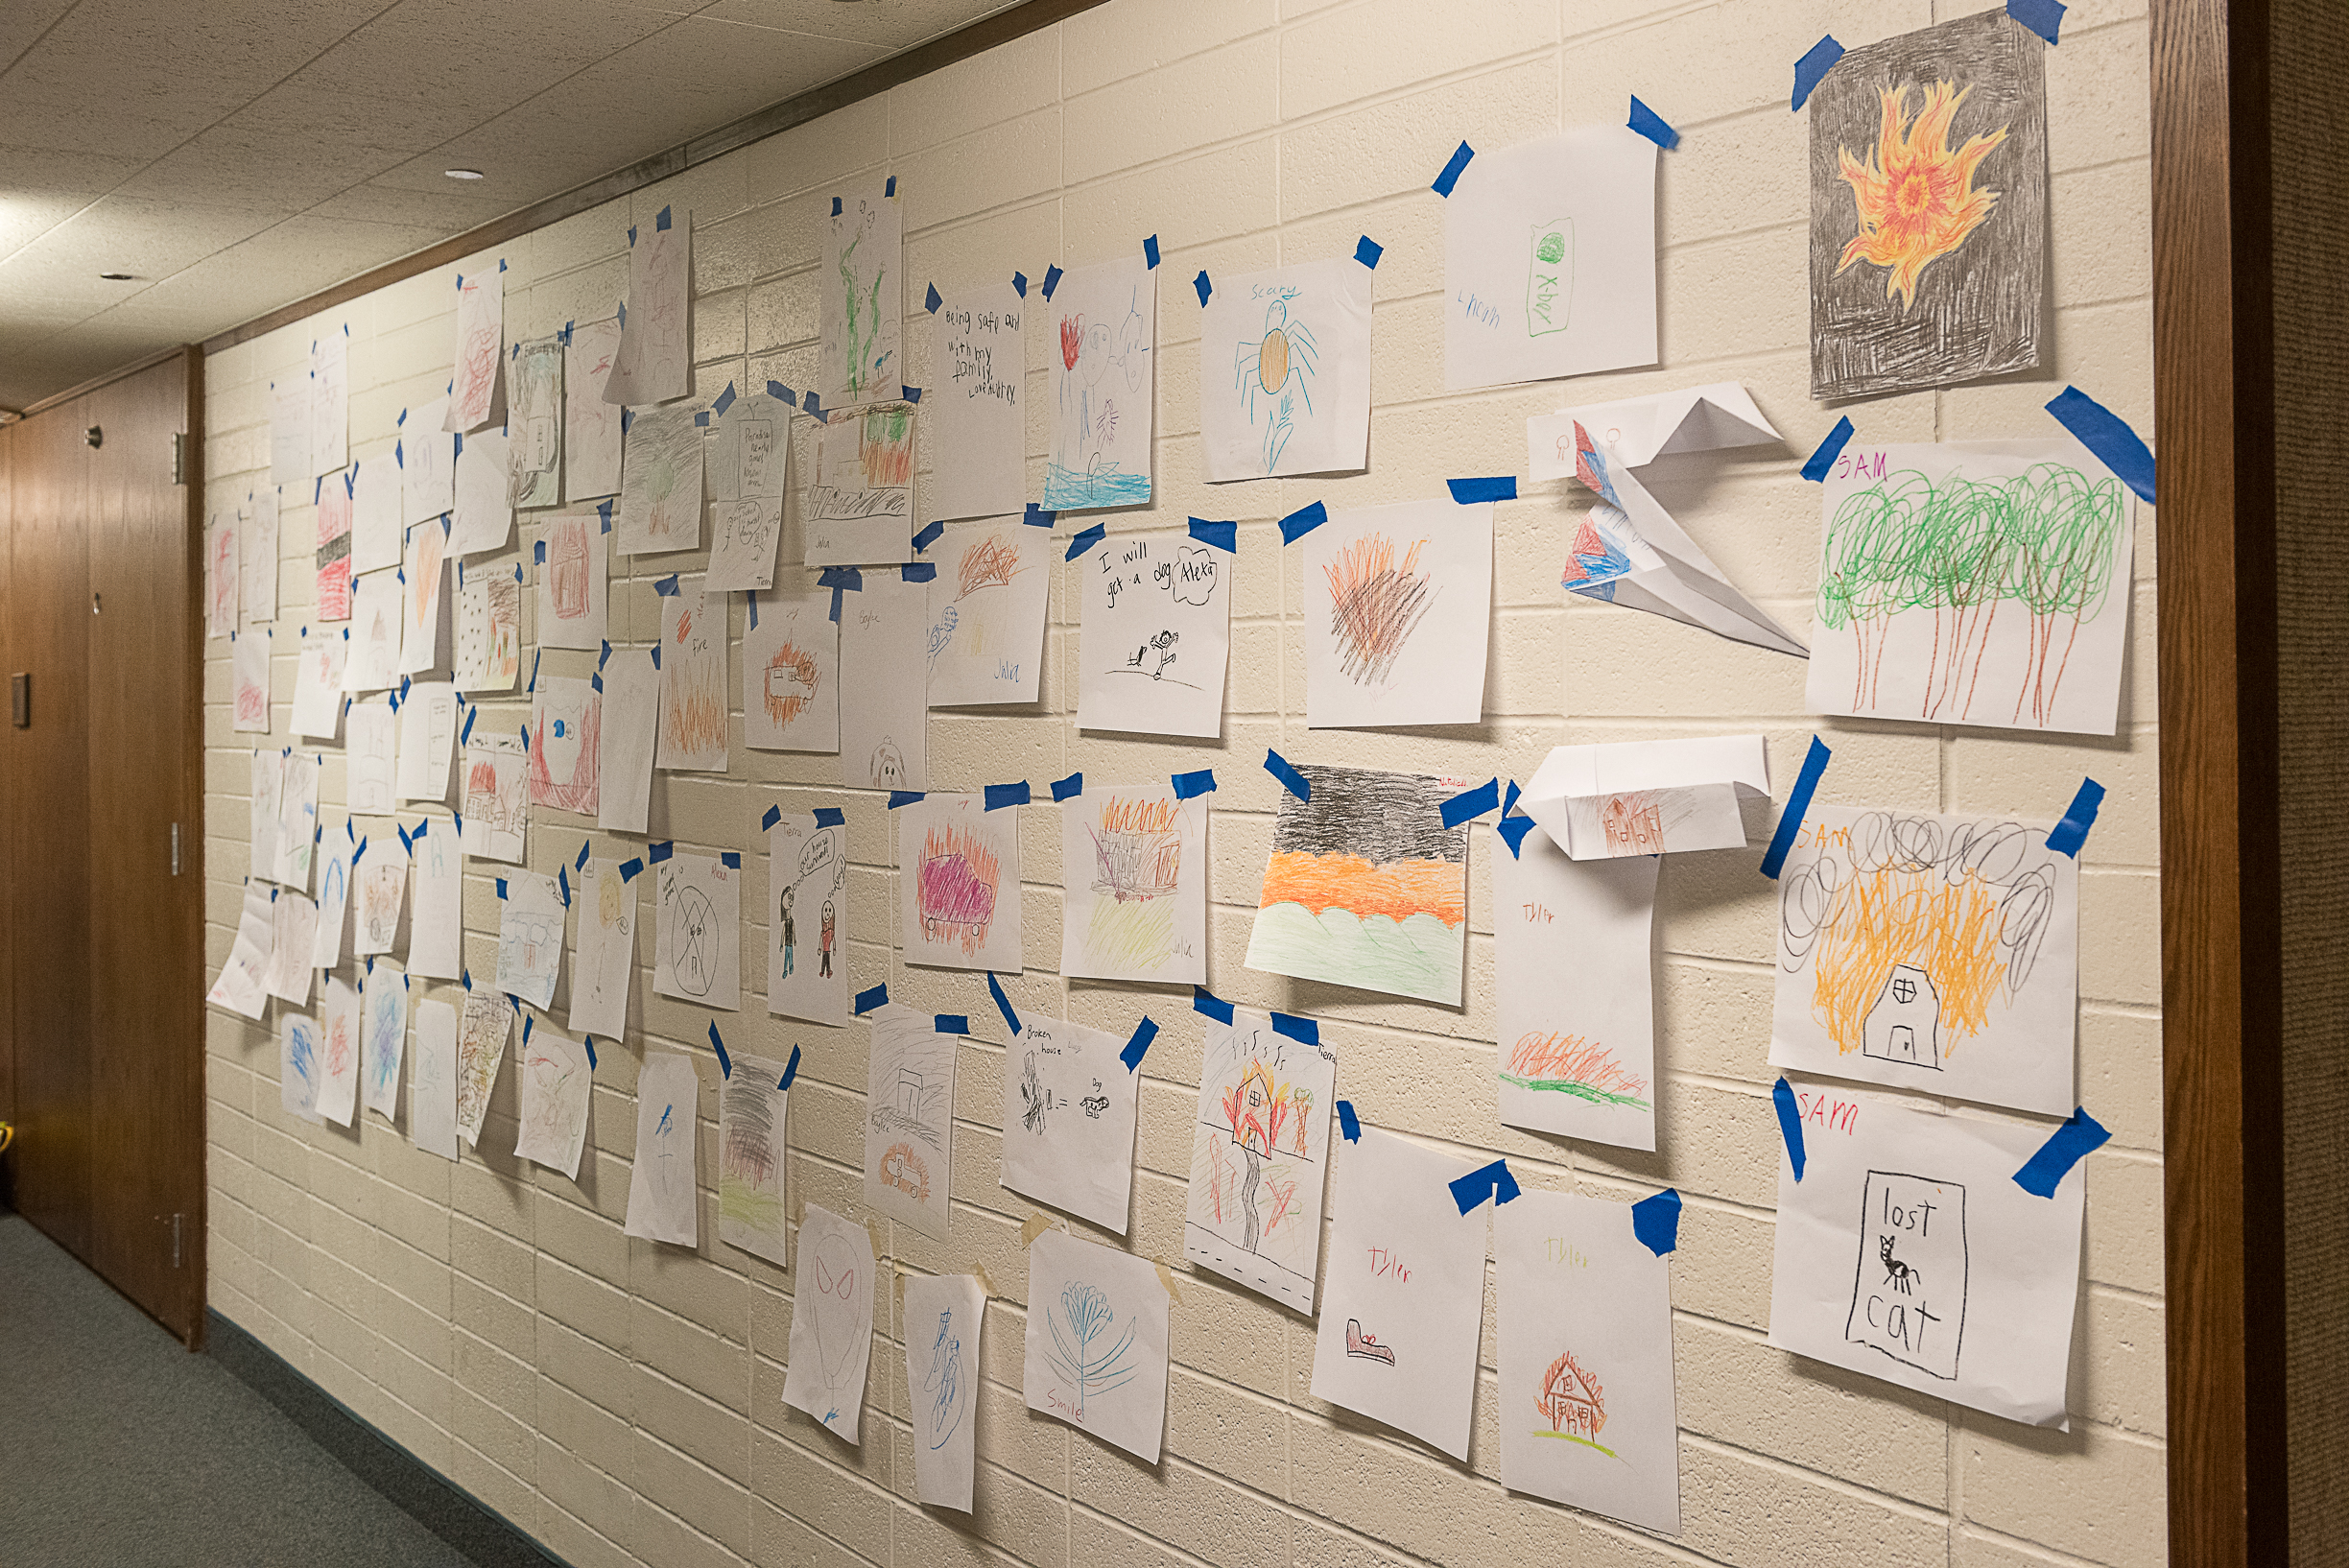 To help face and heal from the devastating wildfire that struck Paradise, California, children create drawings depicting the impact of the fire and place them on the wall of a local meetinghouse, displayed on Nov. 16, 2018. The drawings will remain posted in the building for a long time, say local Church leaders.